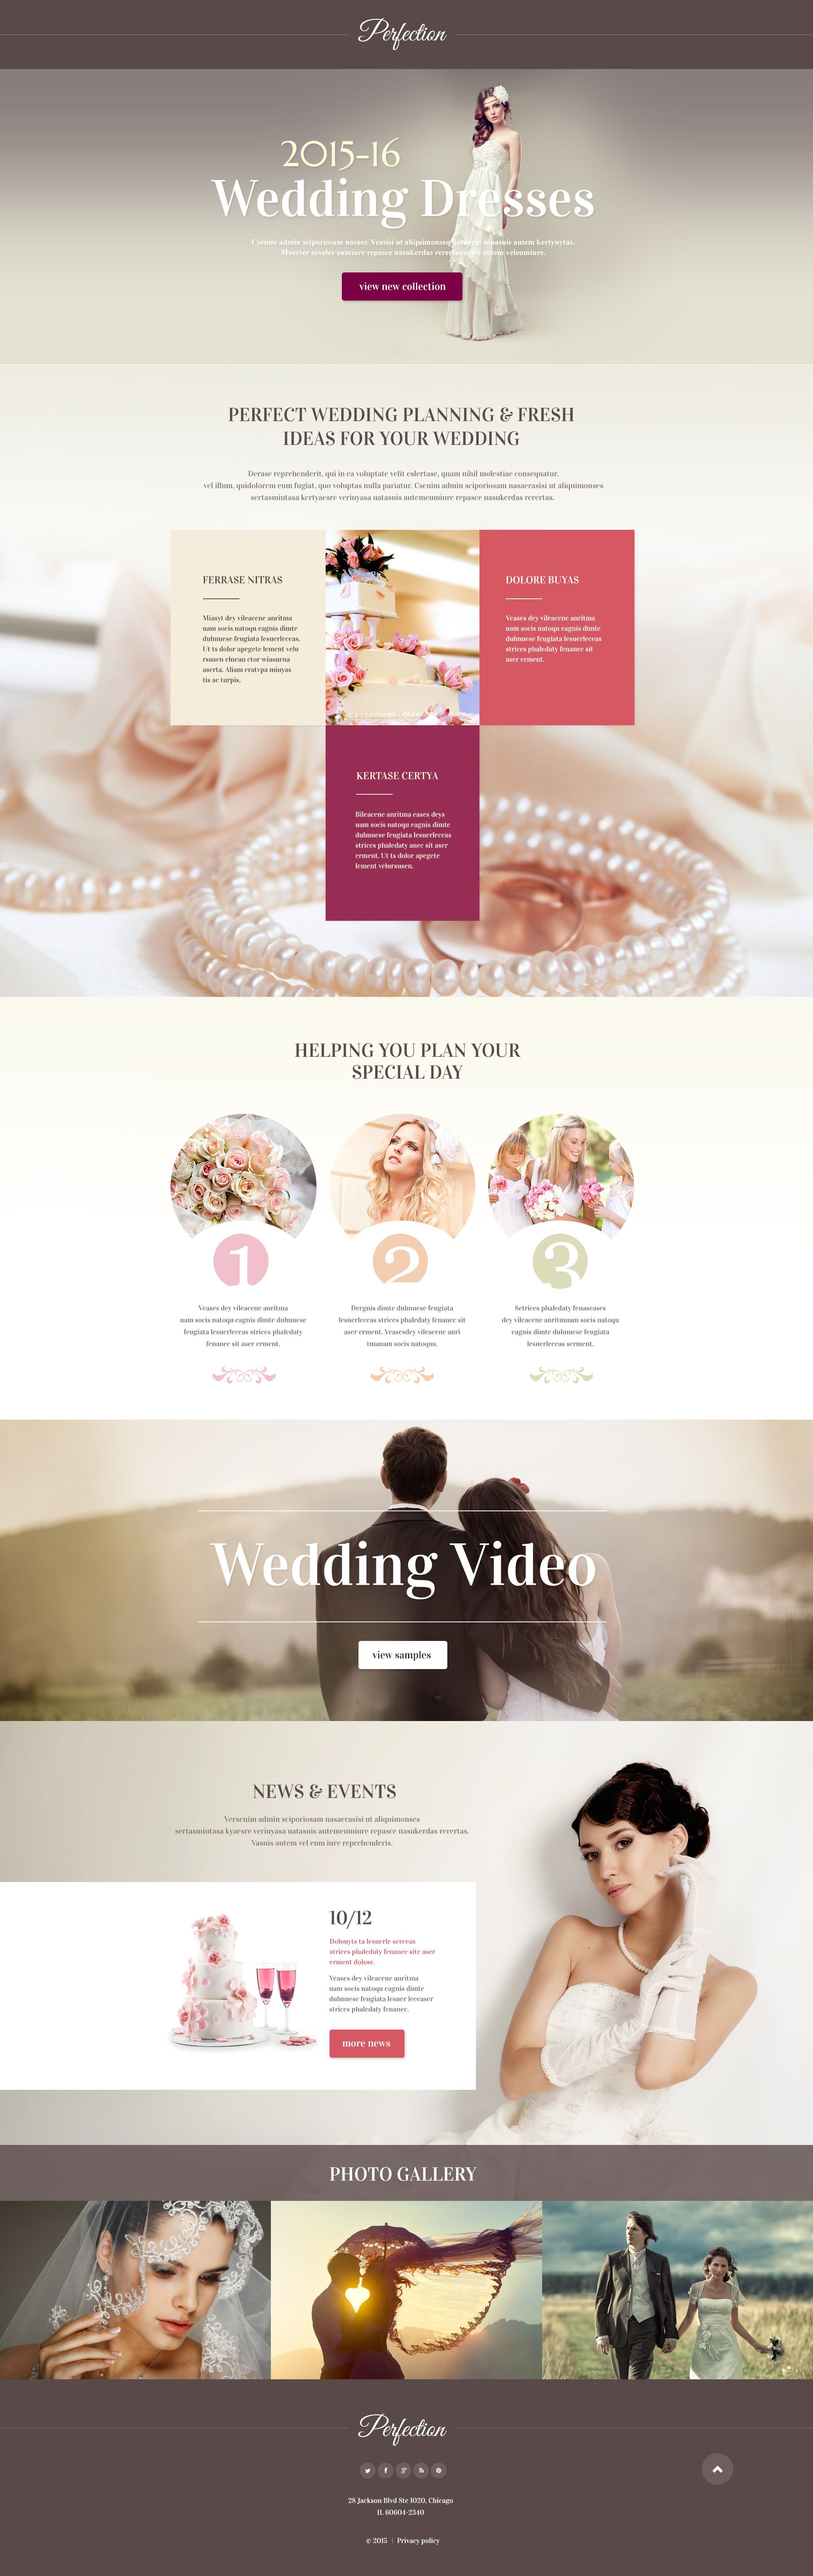 The Perfection Wedding Landing Page Template Design 53871, one of the best Landing Page templates of its kind (wedding, most popular), also known as perfection wedding Landing Page template, venues Landing Page template, place Landing Page template, venue Landing Page template, event Landing Page template, party Landing Page template, city Landing Page template, beach Landing Page template, country Landing Page template, exotic Landing Page template, celebration Landing Page template, marriage and related with perfection wedding, venues, place, venue, event, party, city, beach, country, exotic, celebration, marriage, etc.